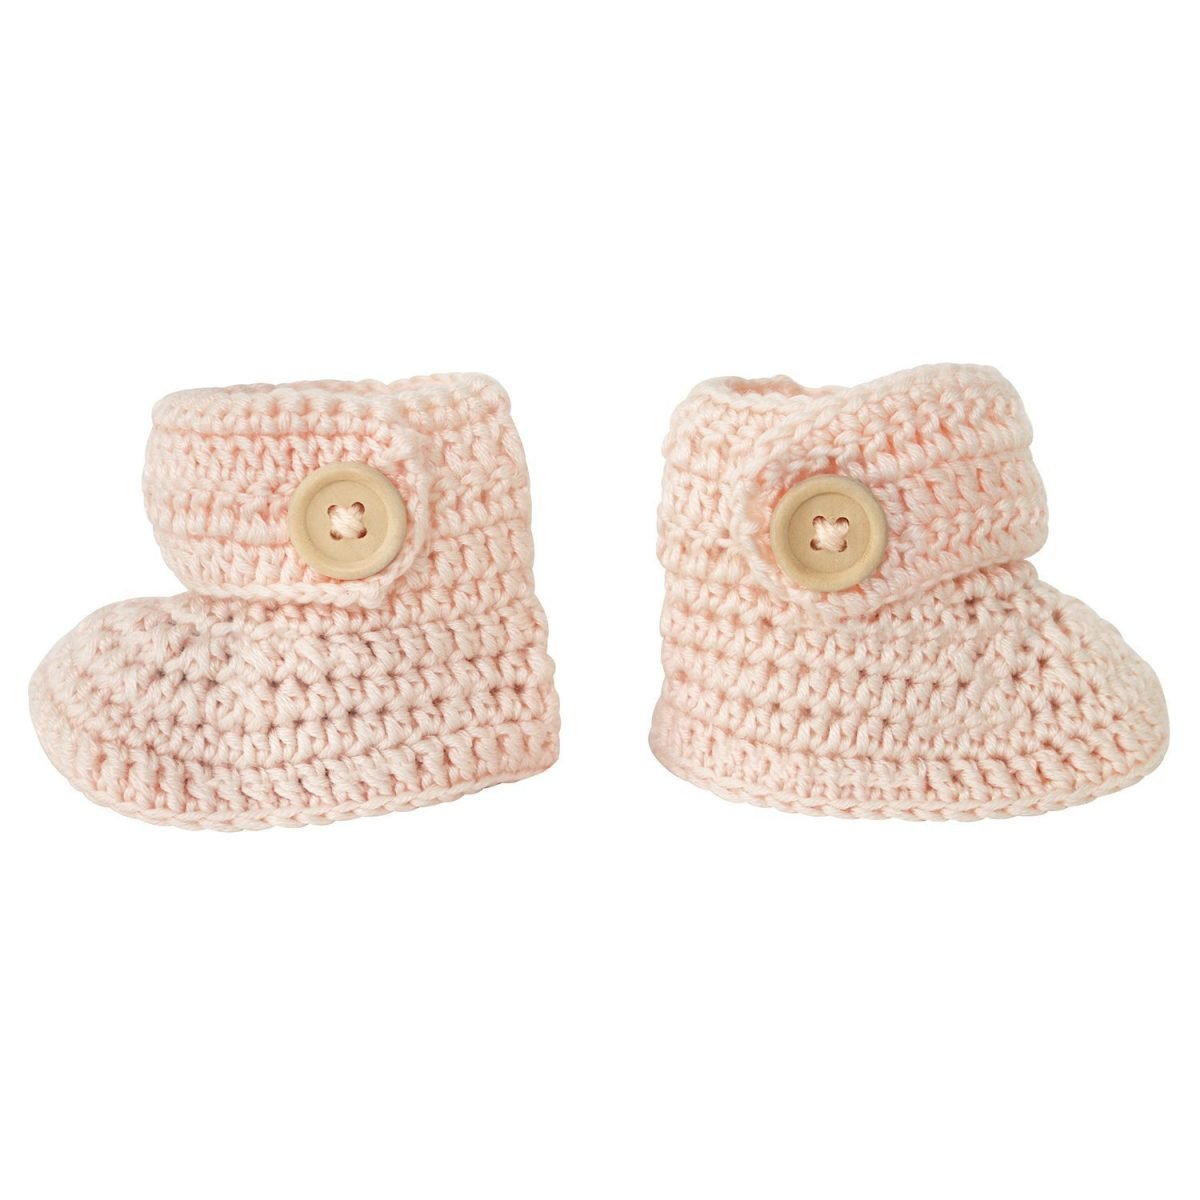 crocheted booties in peach